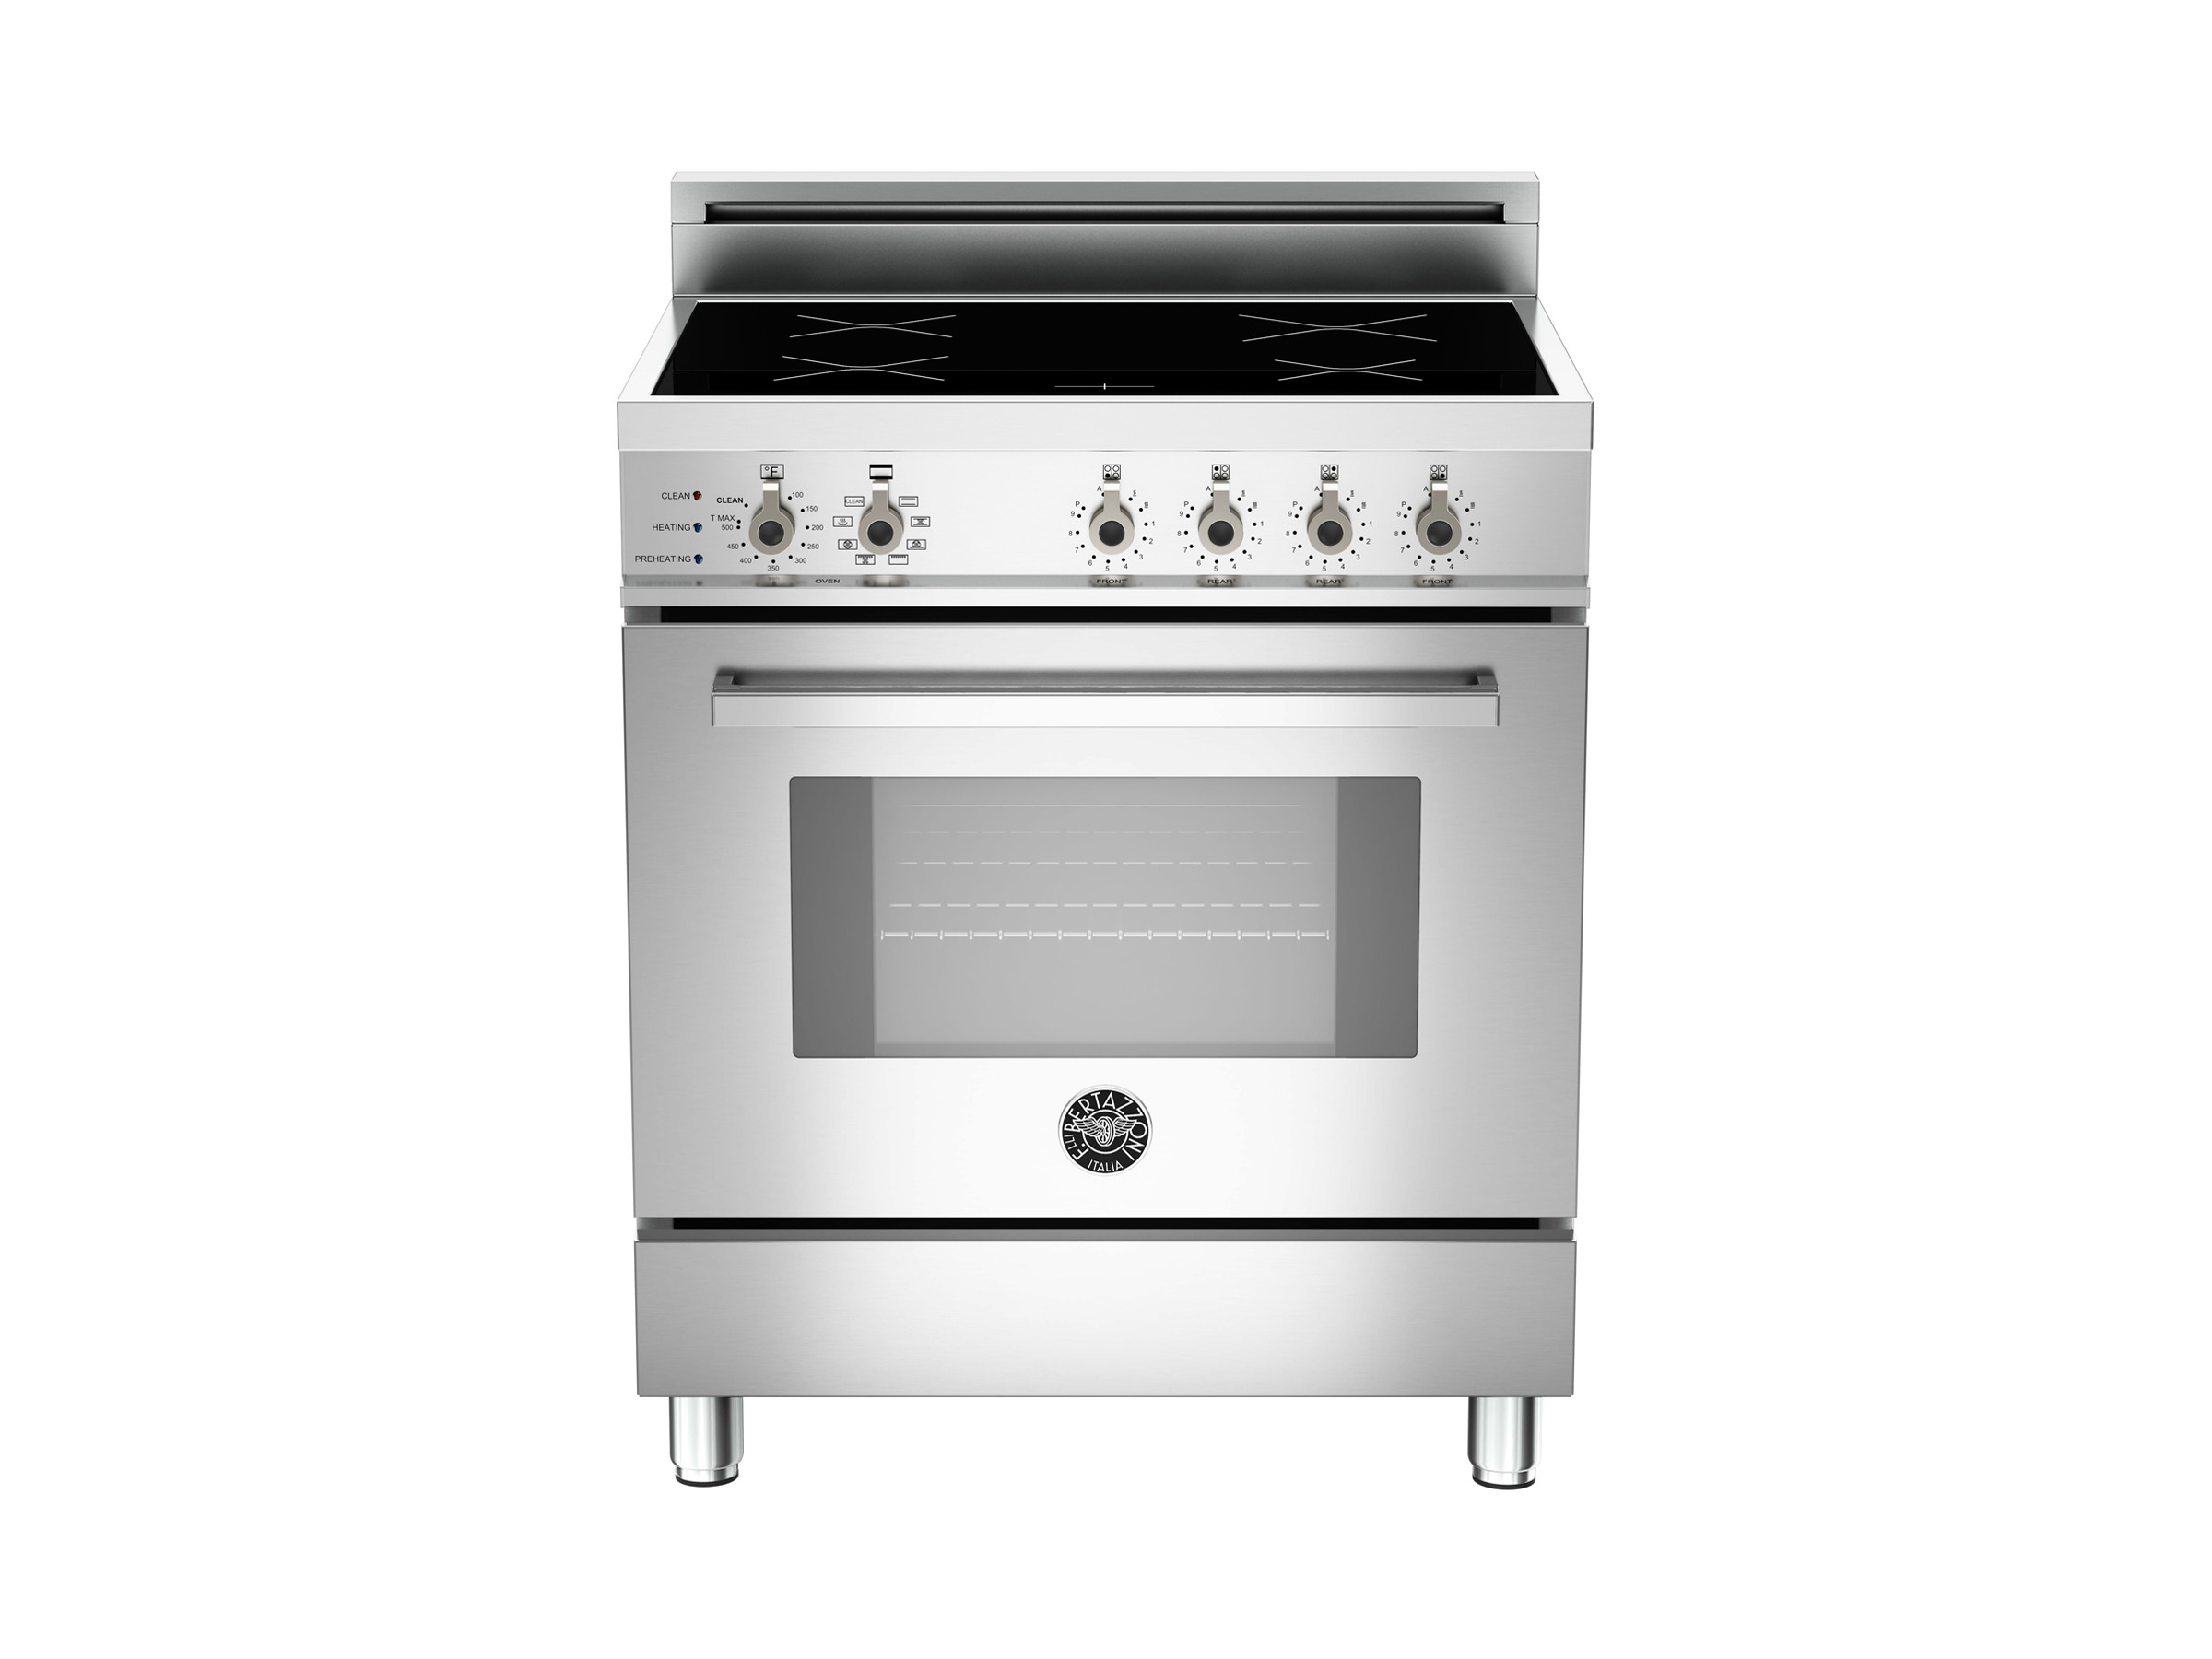 30 4-Induction Zones, Electric Self-Clean oven | Bertazzoni - Stainless